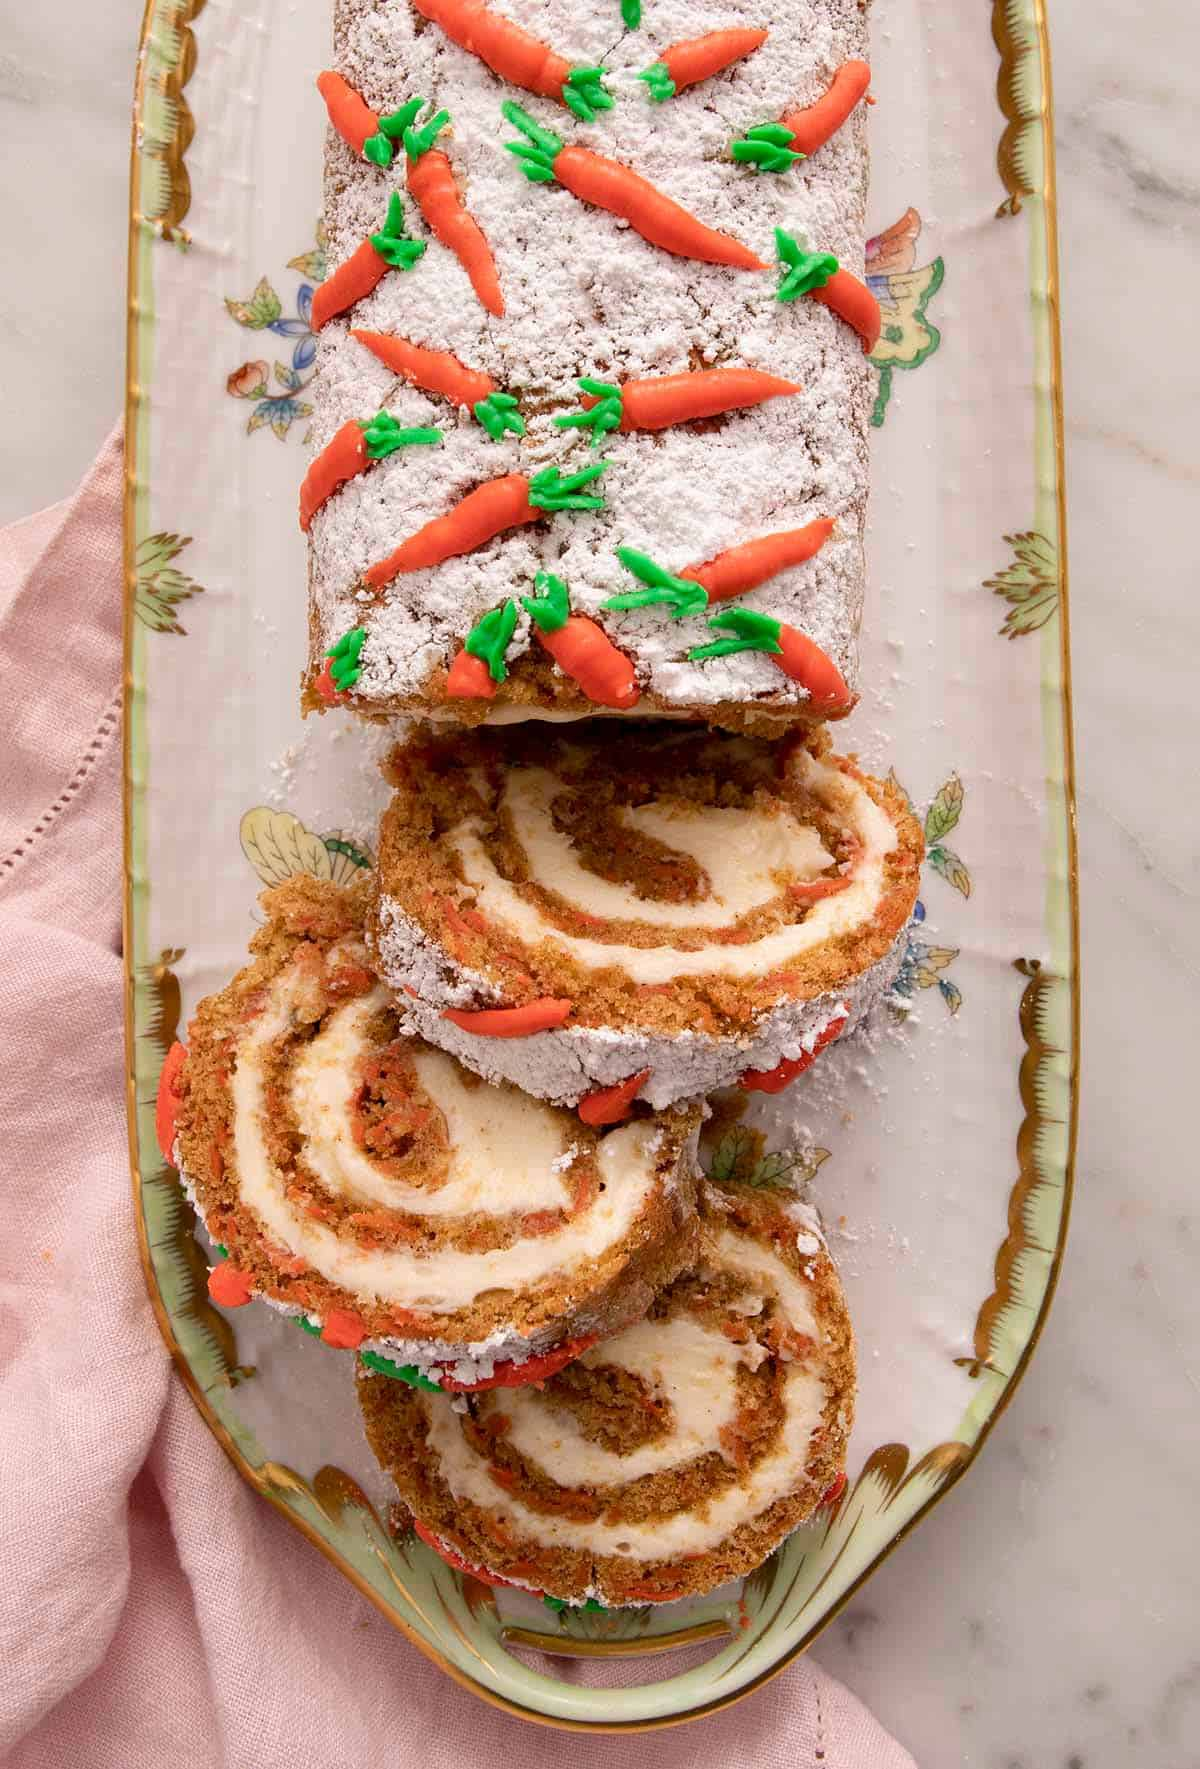 An overhead shot of a a carrot cake roll cut into slices